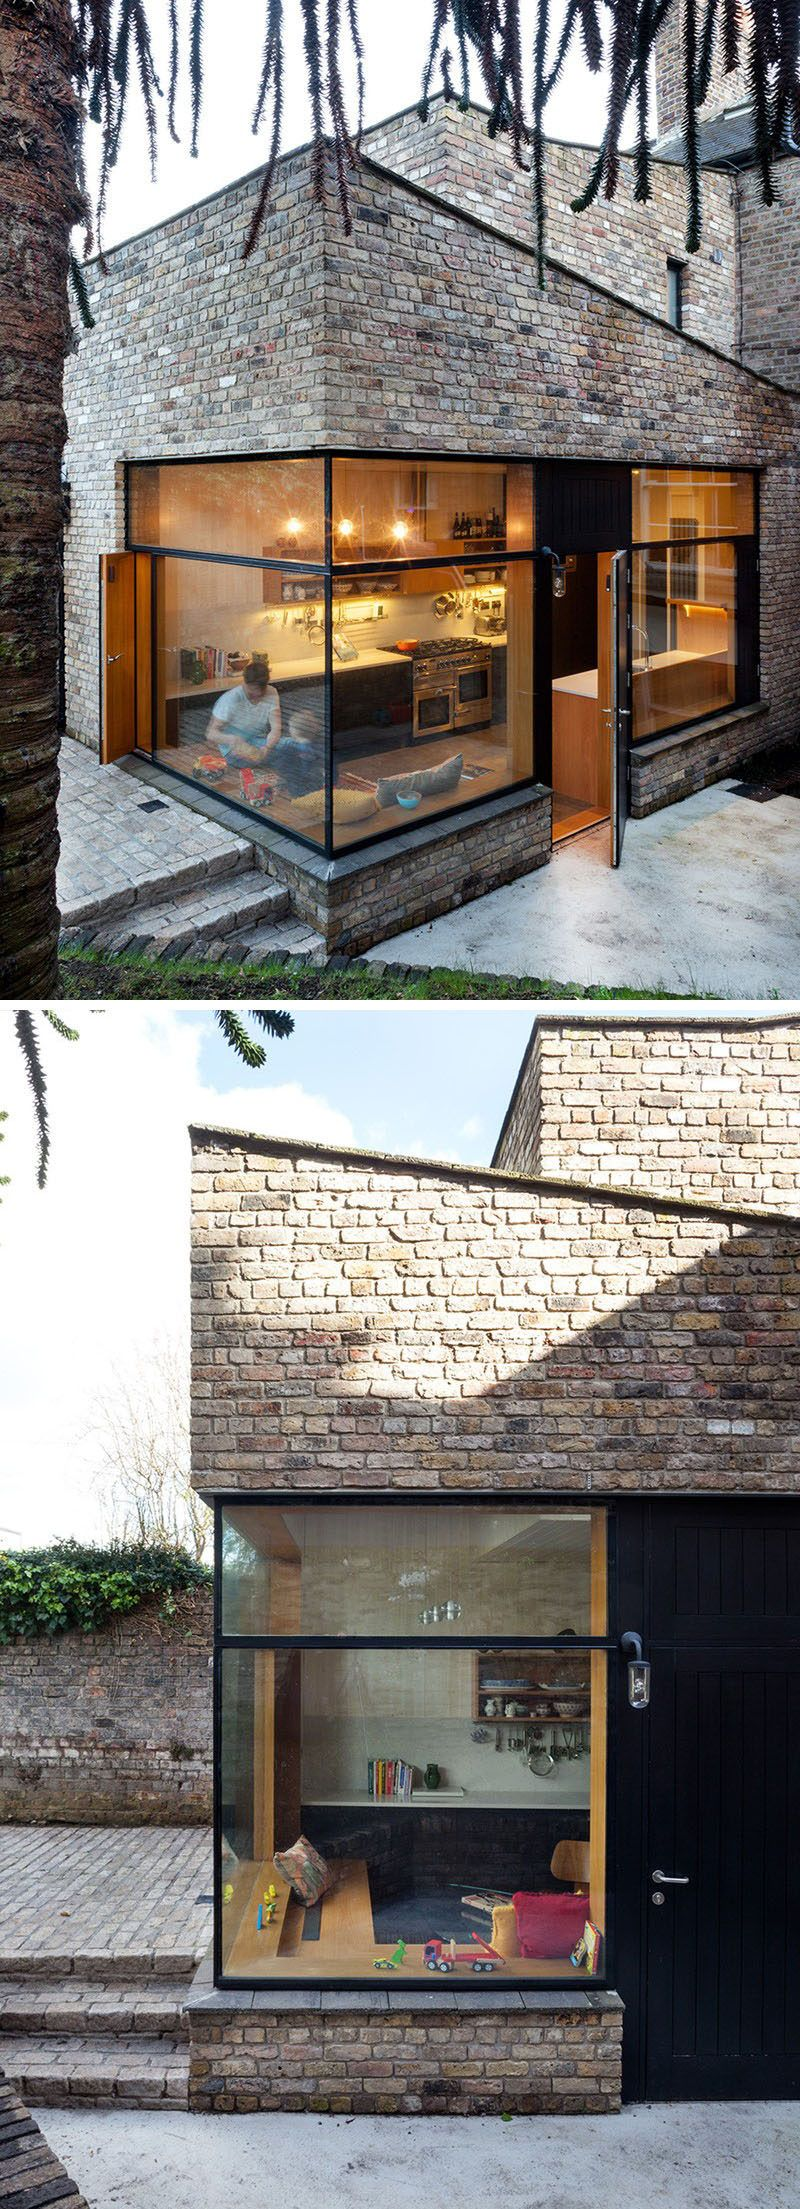 14 modern houses made of brick this brick extension matches the rest of the brick exterior and features large windows to maximize the amount of natural